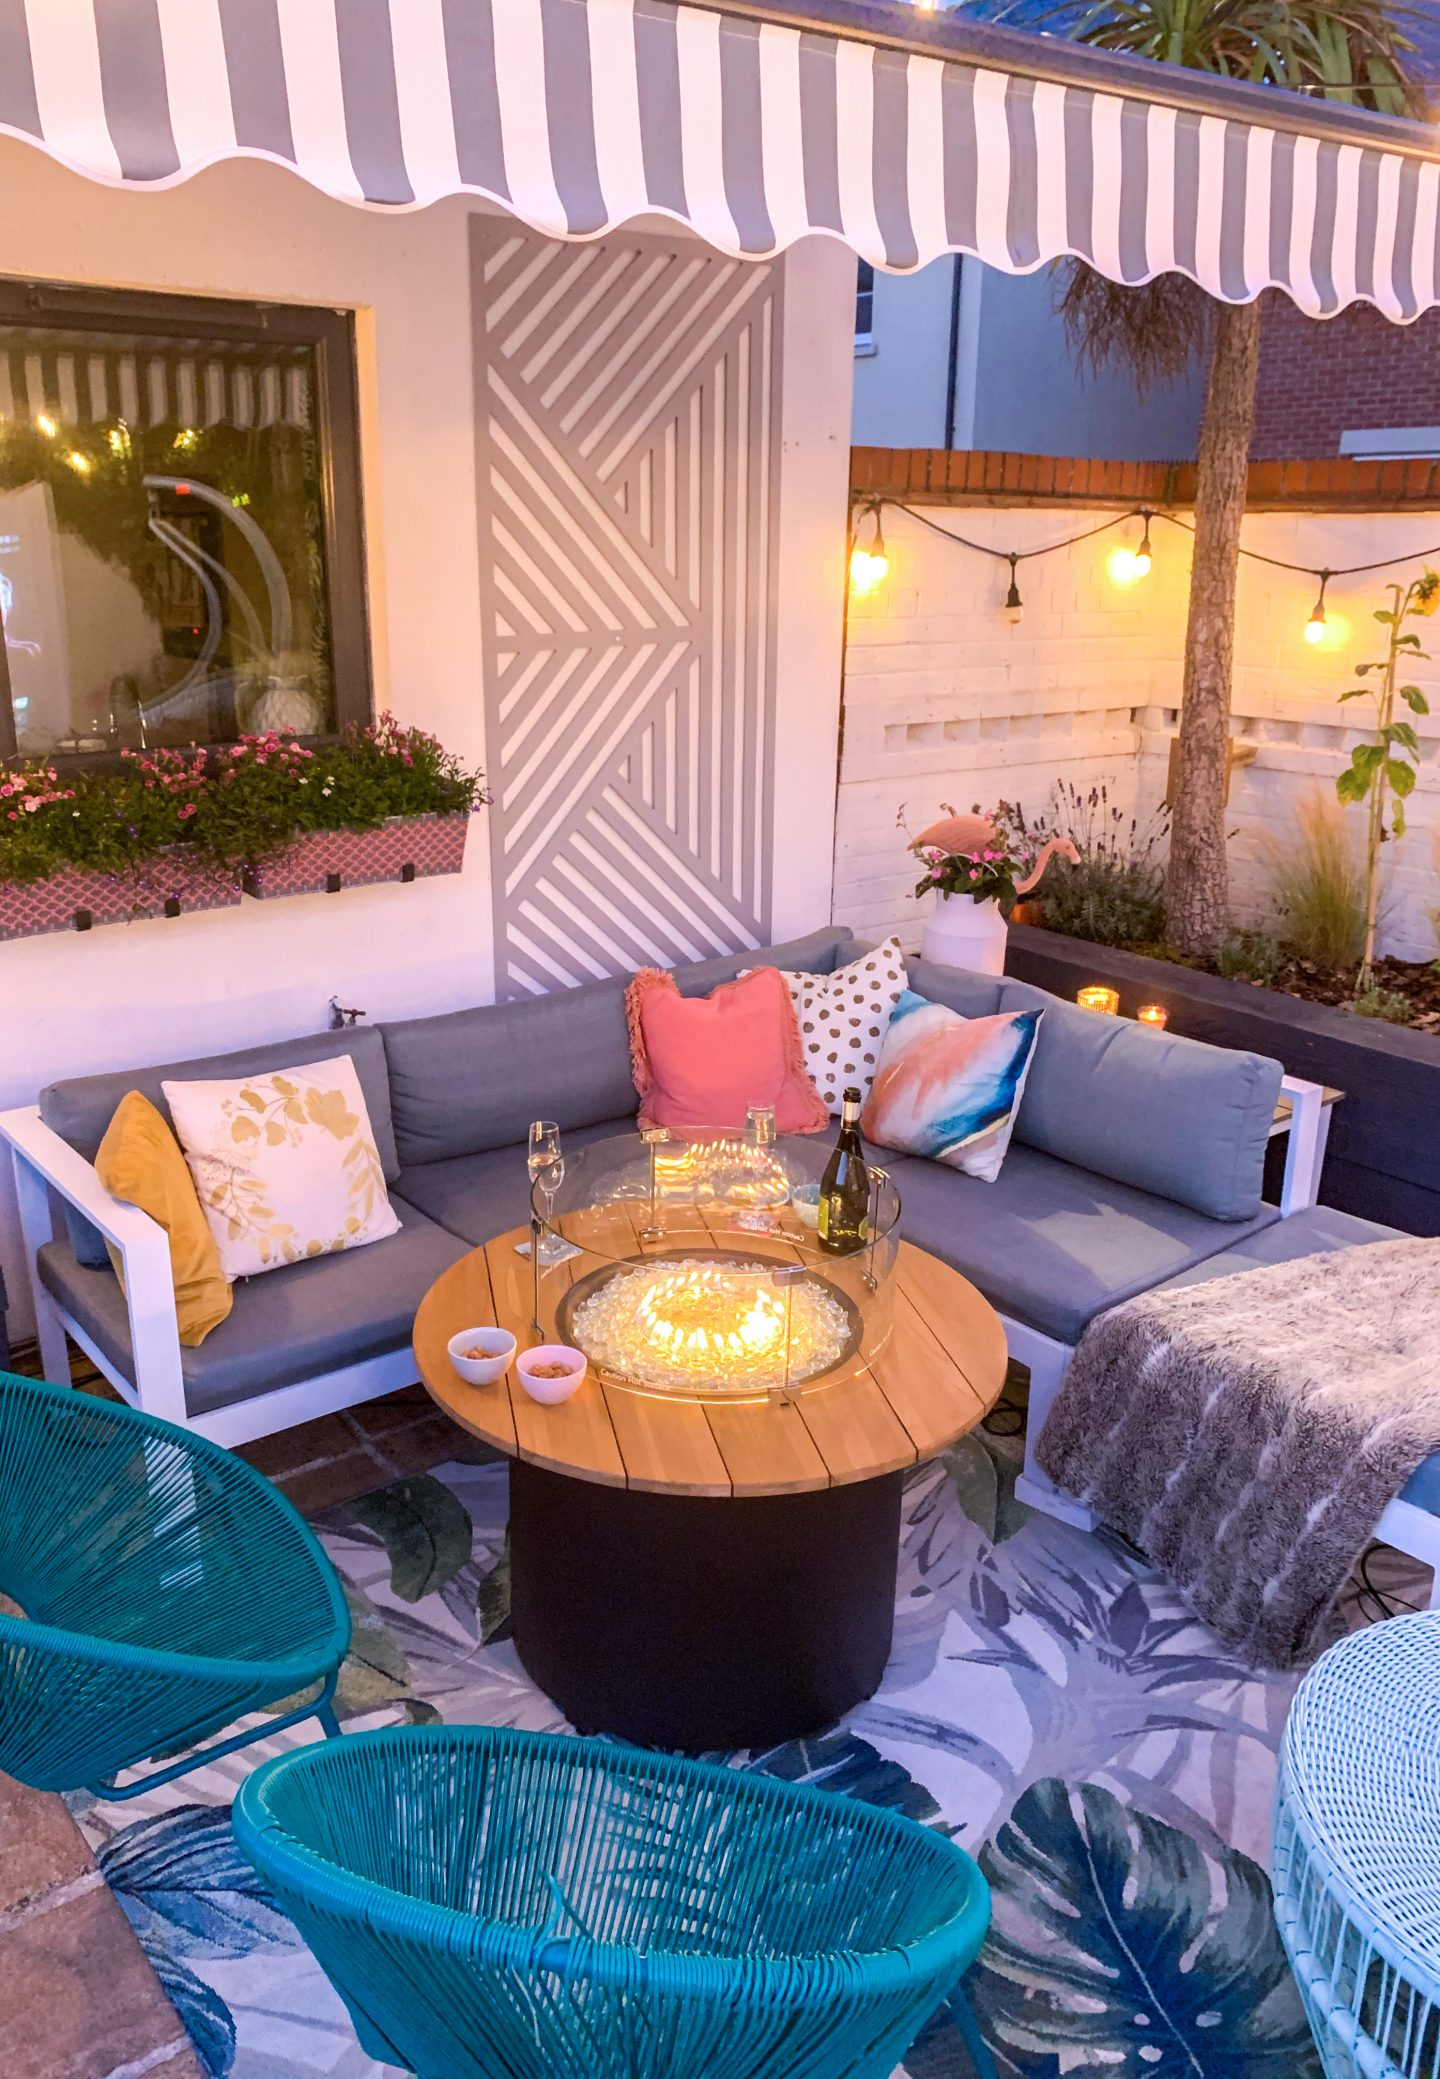 GARDEN MAKEOVER WITH OUTBACK GAS FIRE PIT